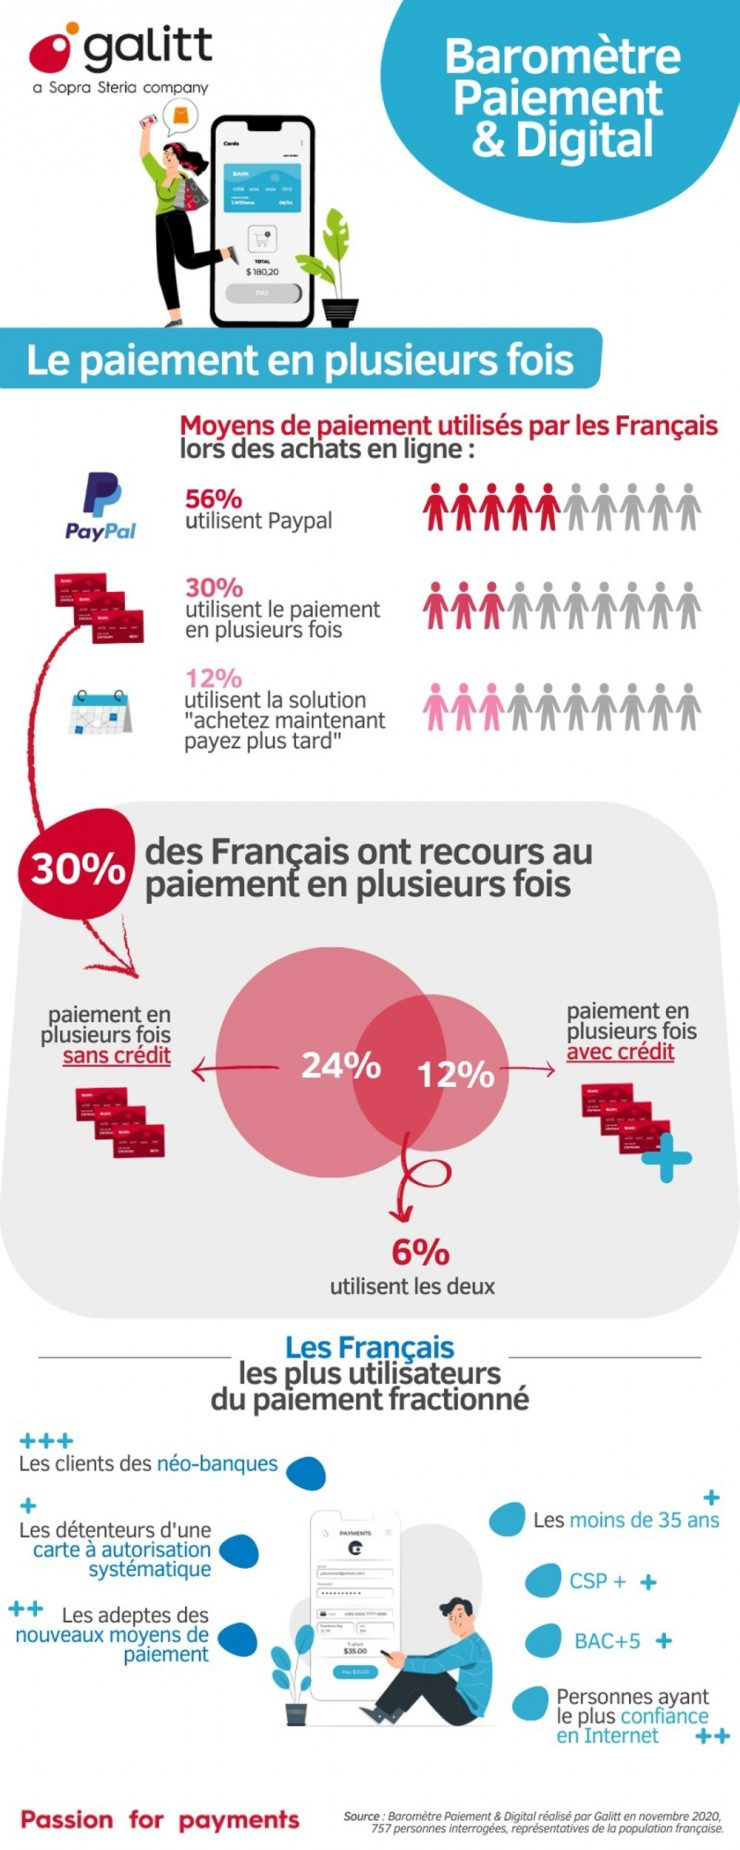 Installment payments (payment by installment) in France